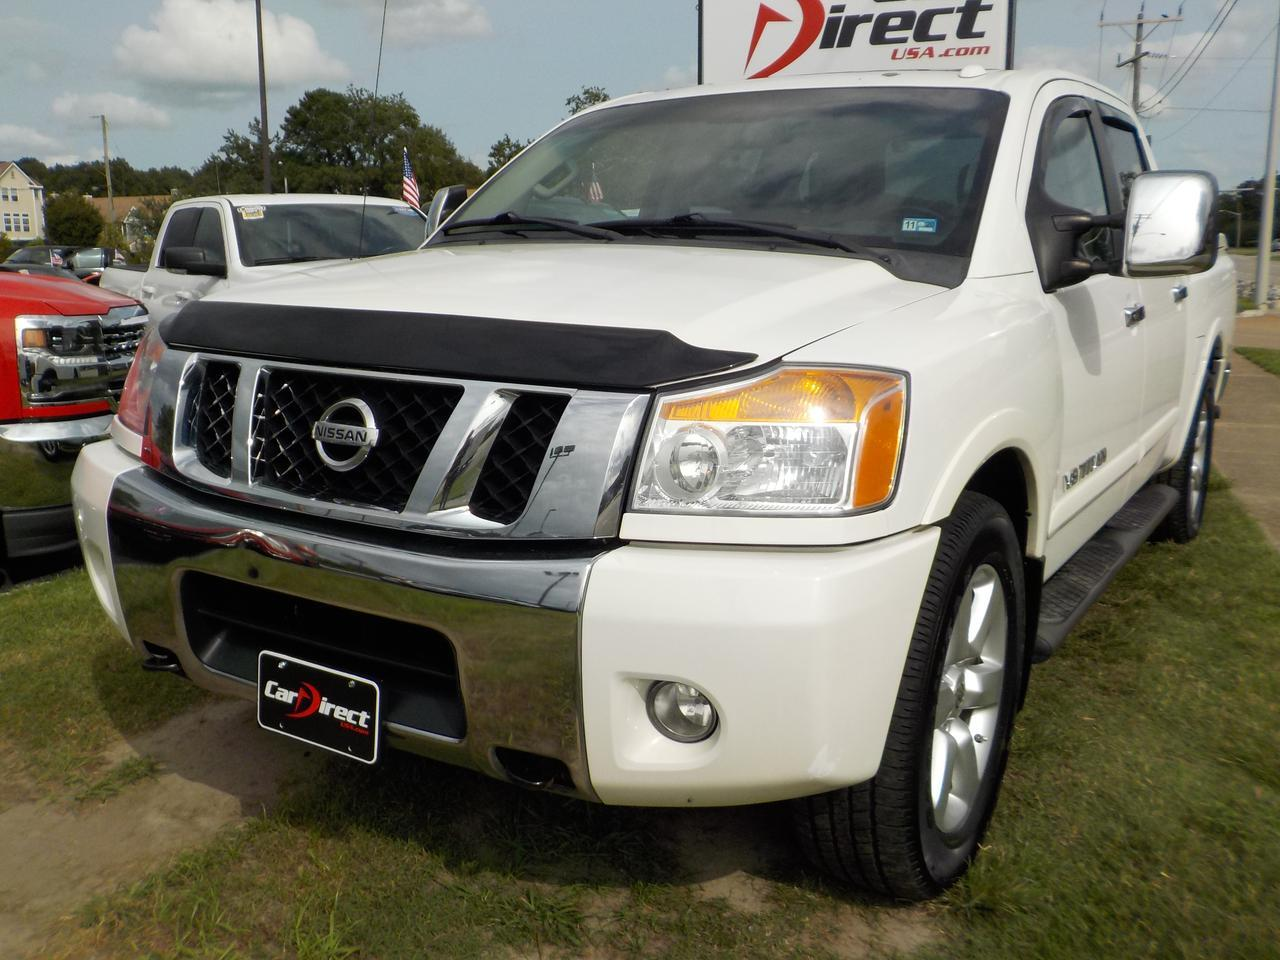 2012 NISSAN TITAN SL FLEX FUEL, BACKUP CAM, DVD SYETM, HARD TONNEAU COVER, POWER SLIDING REAR WINDOW, TOW/ HITCH PKG!! Virginia Beach VA